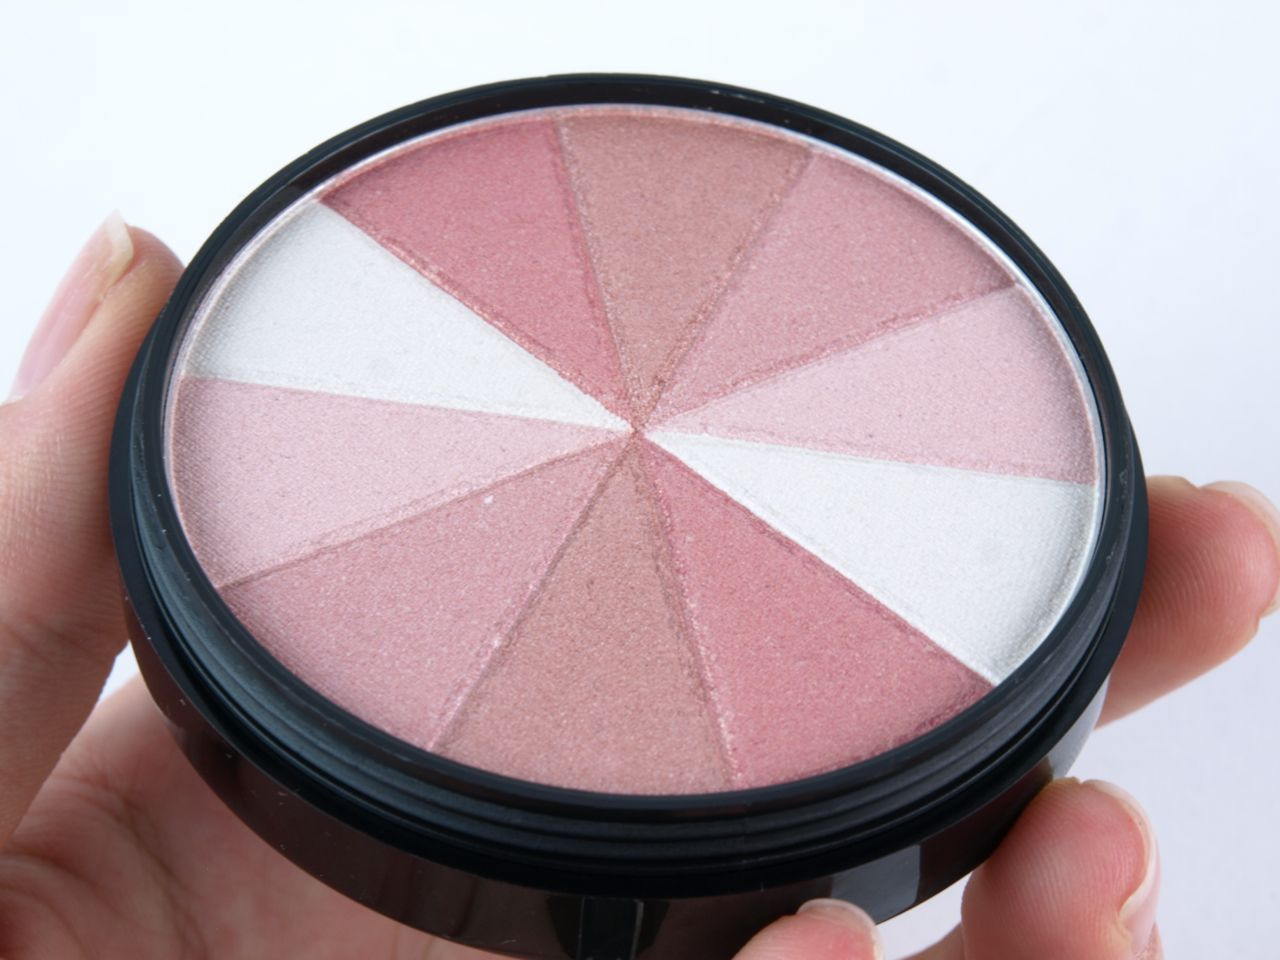 Smashbox Fusion Soft Lights in Baked StarBlush: Review and Swatches